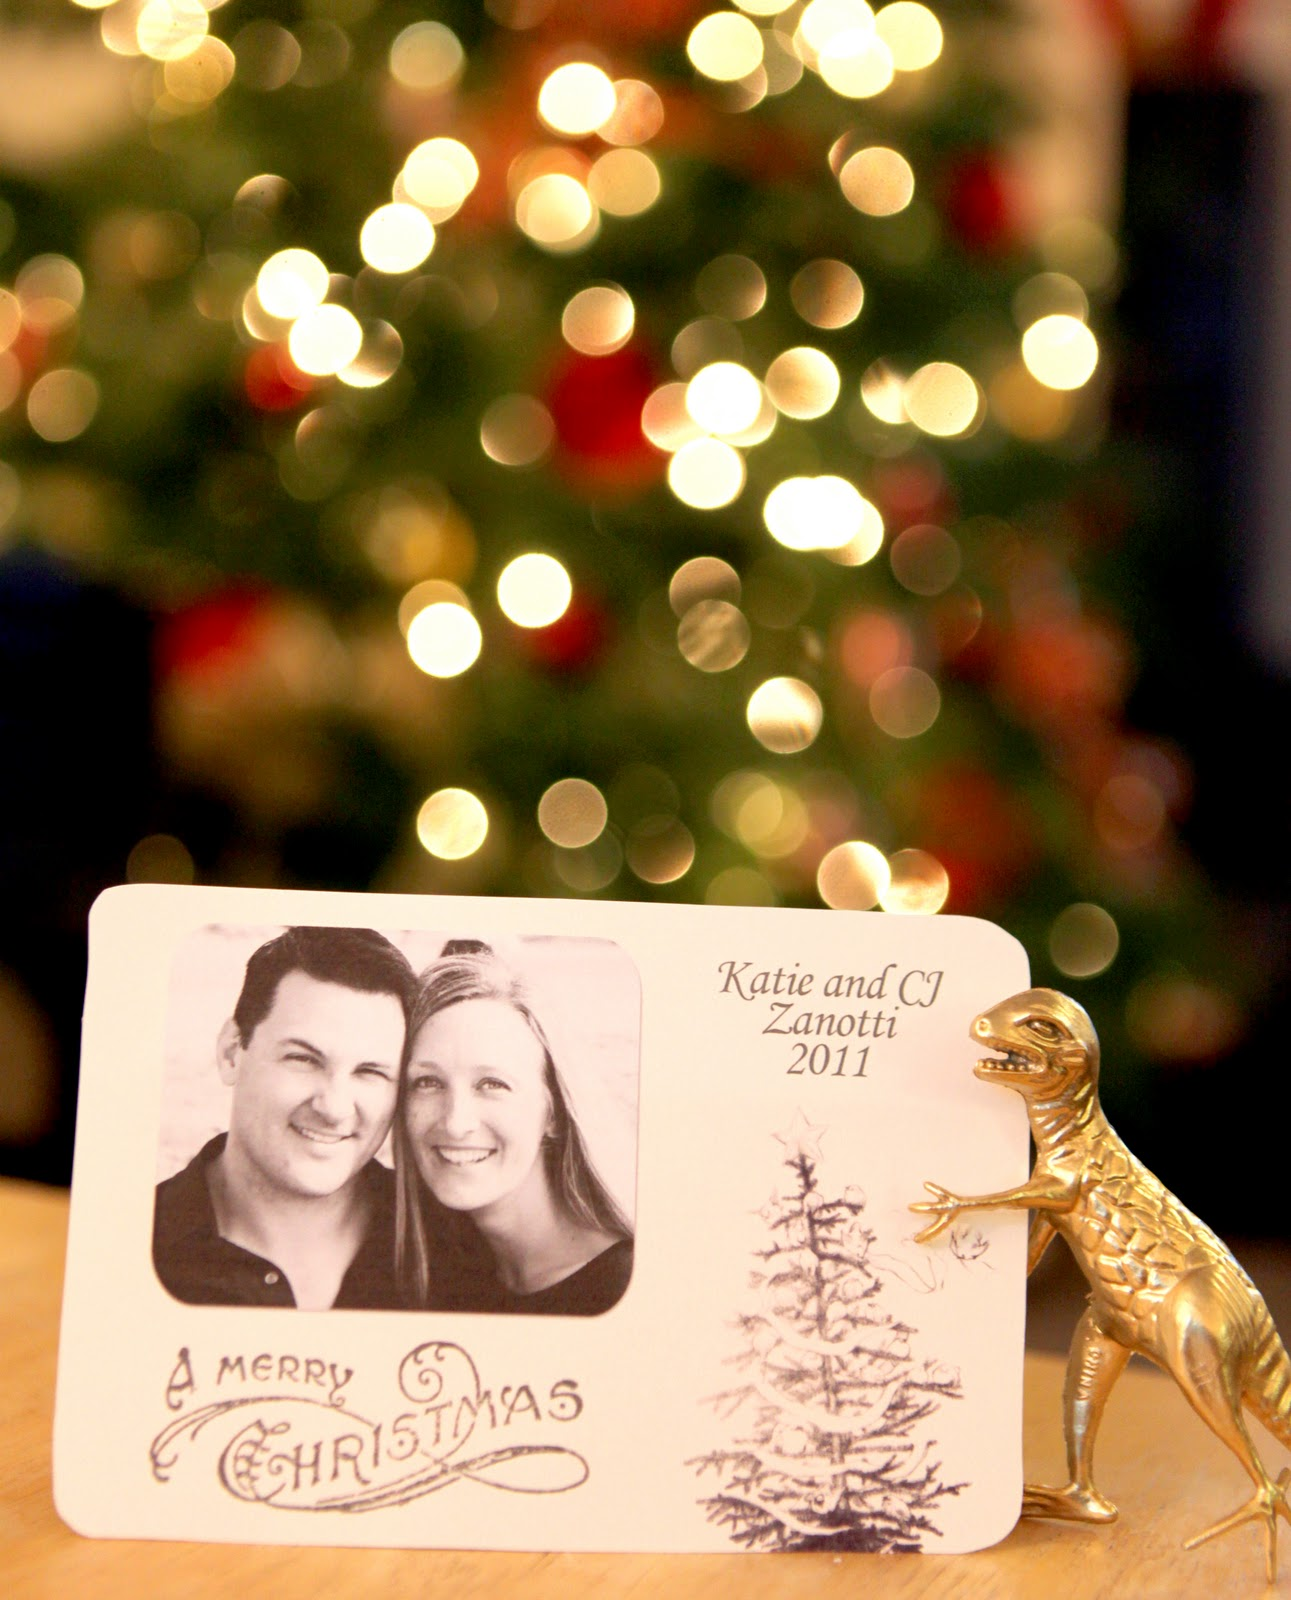 Chloe Moore Photography The Blog Free Christmas Card Templates - Free christmas card templates for photographers